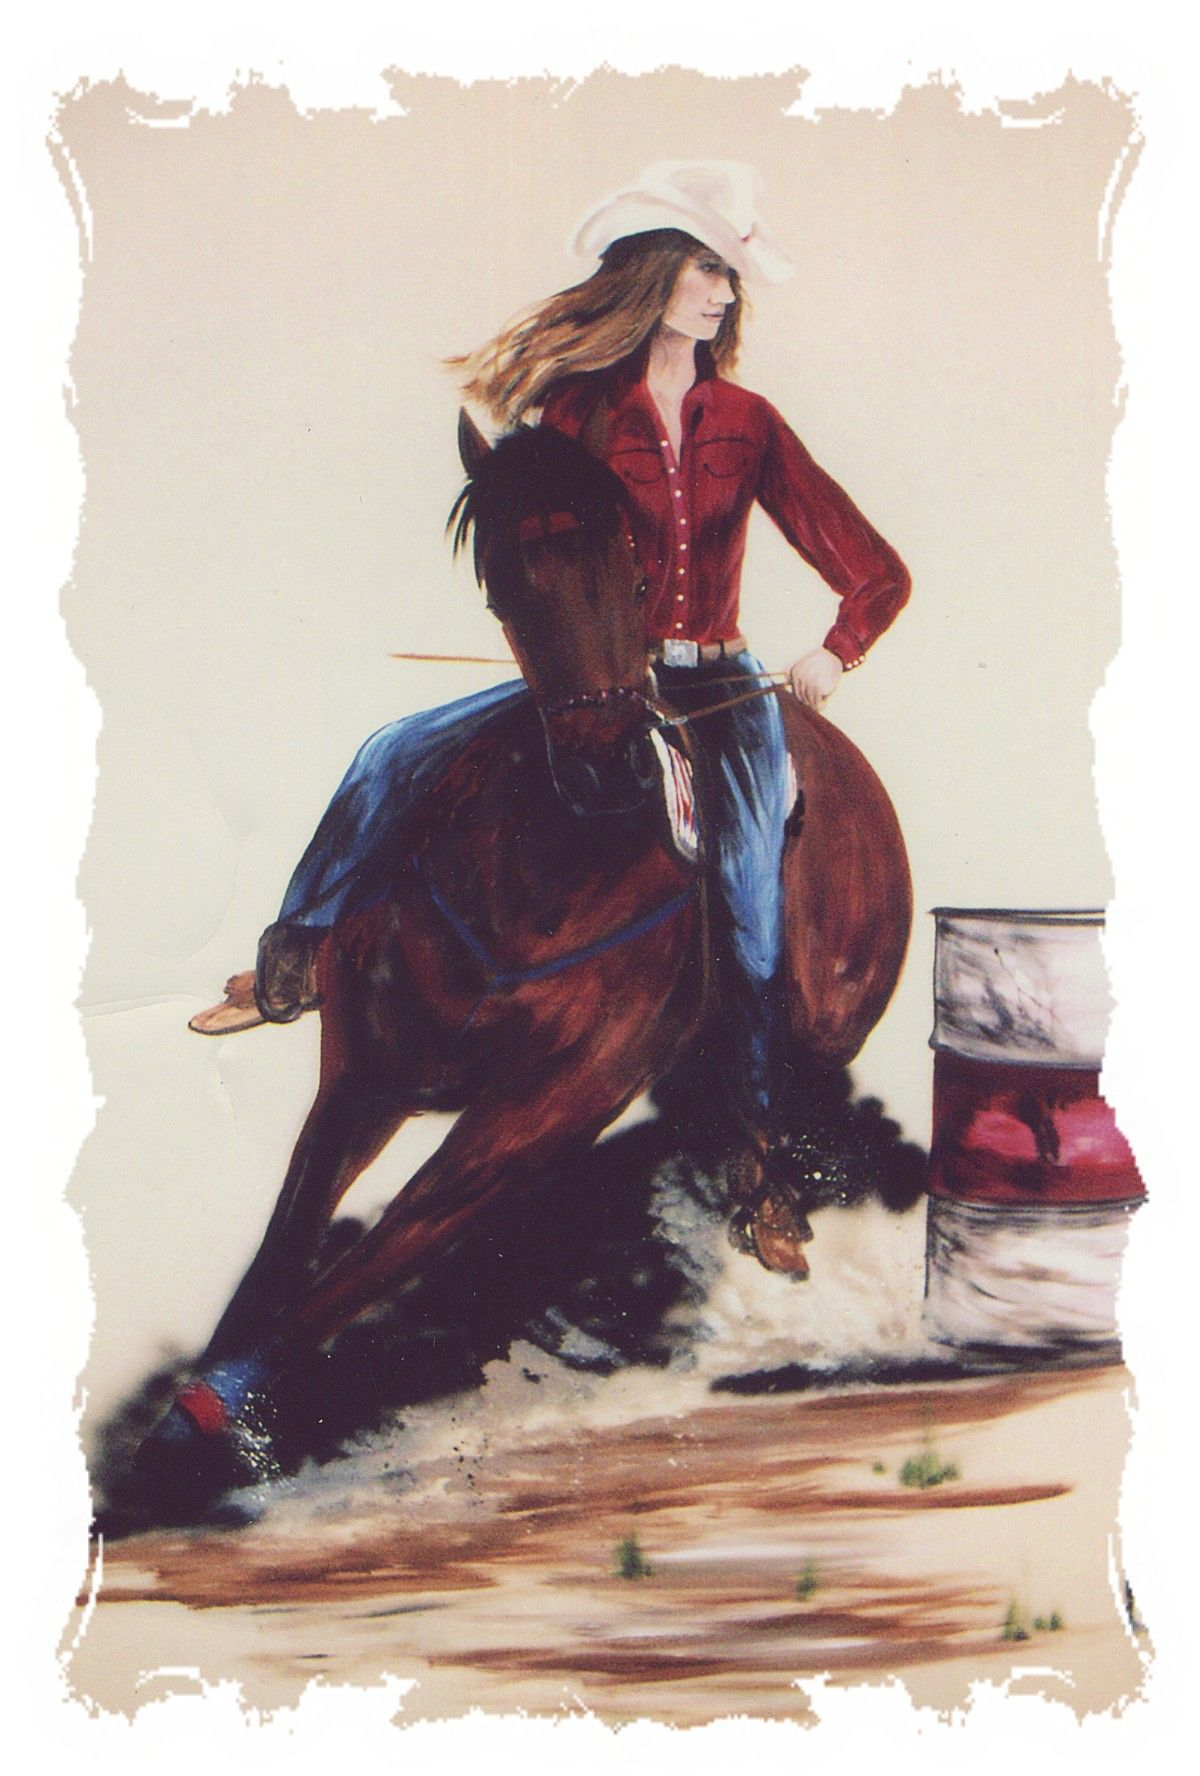 This is a mural of a teenage girl and her horse barrel racing I did on her wall